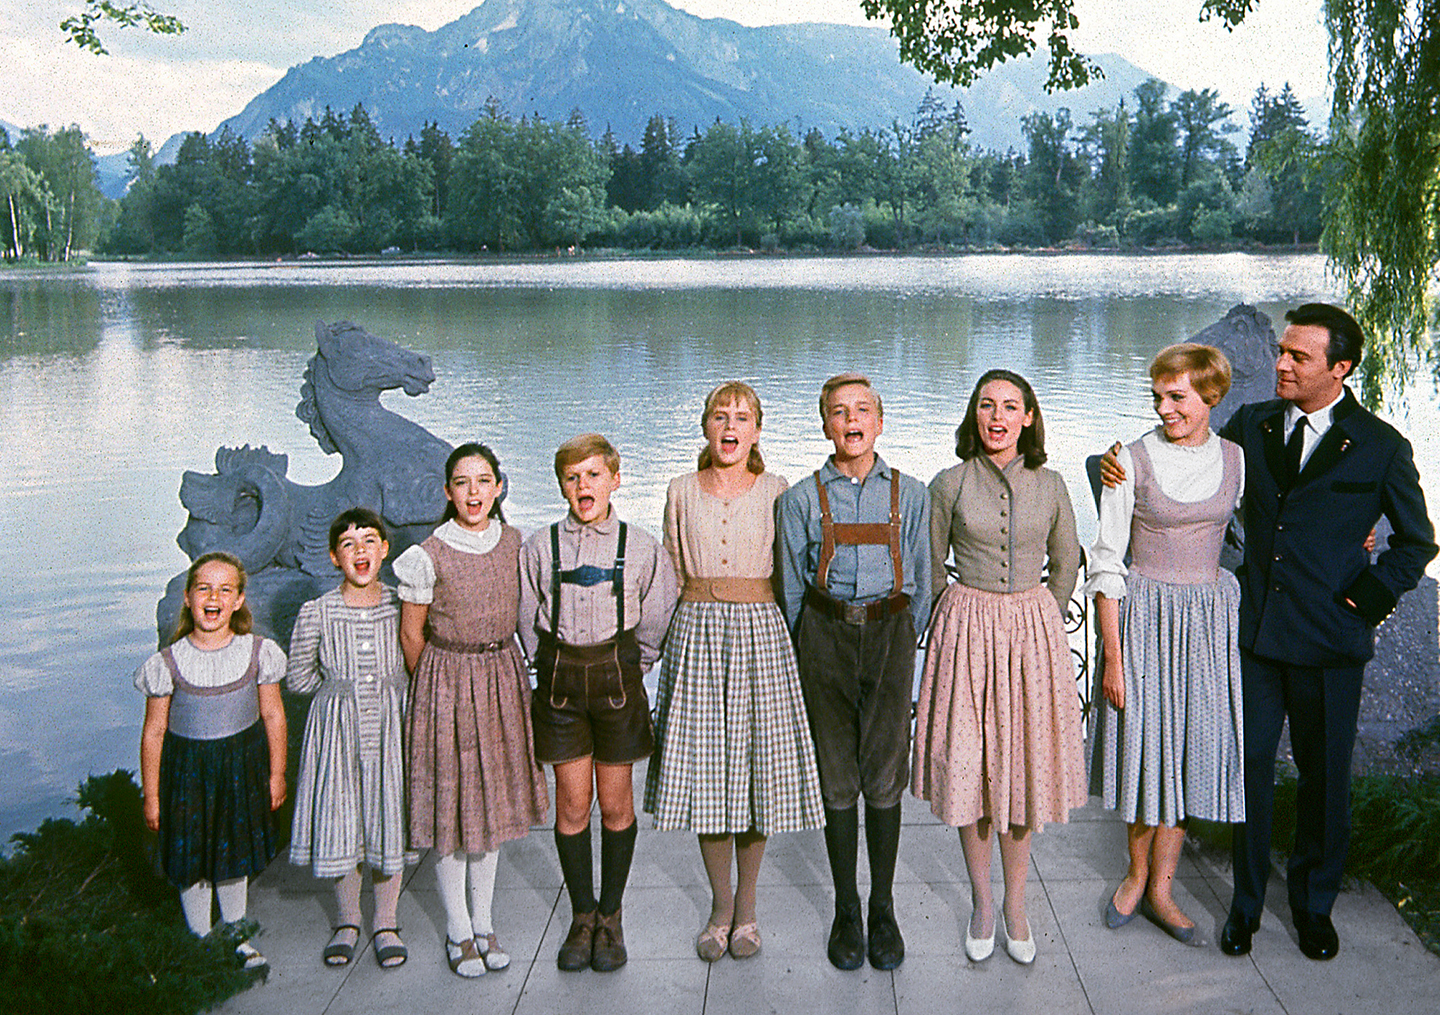 sound of music 1.jpg